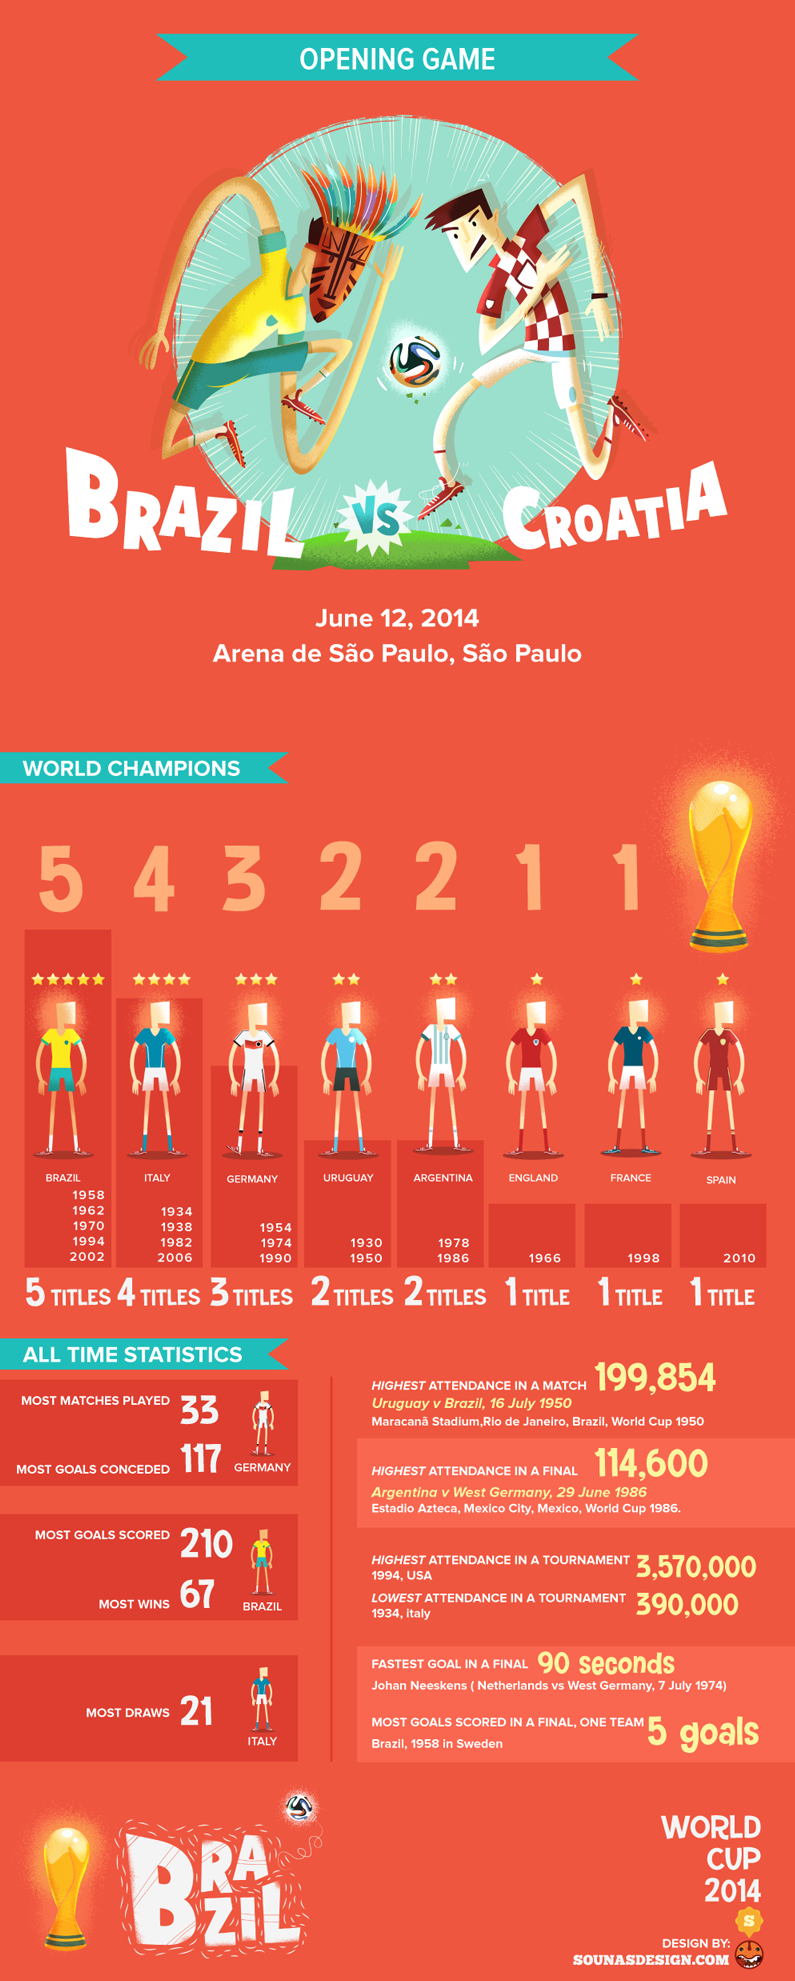 WorldCup 2014_Infogrphx_Sounas_2